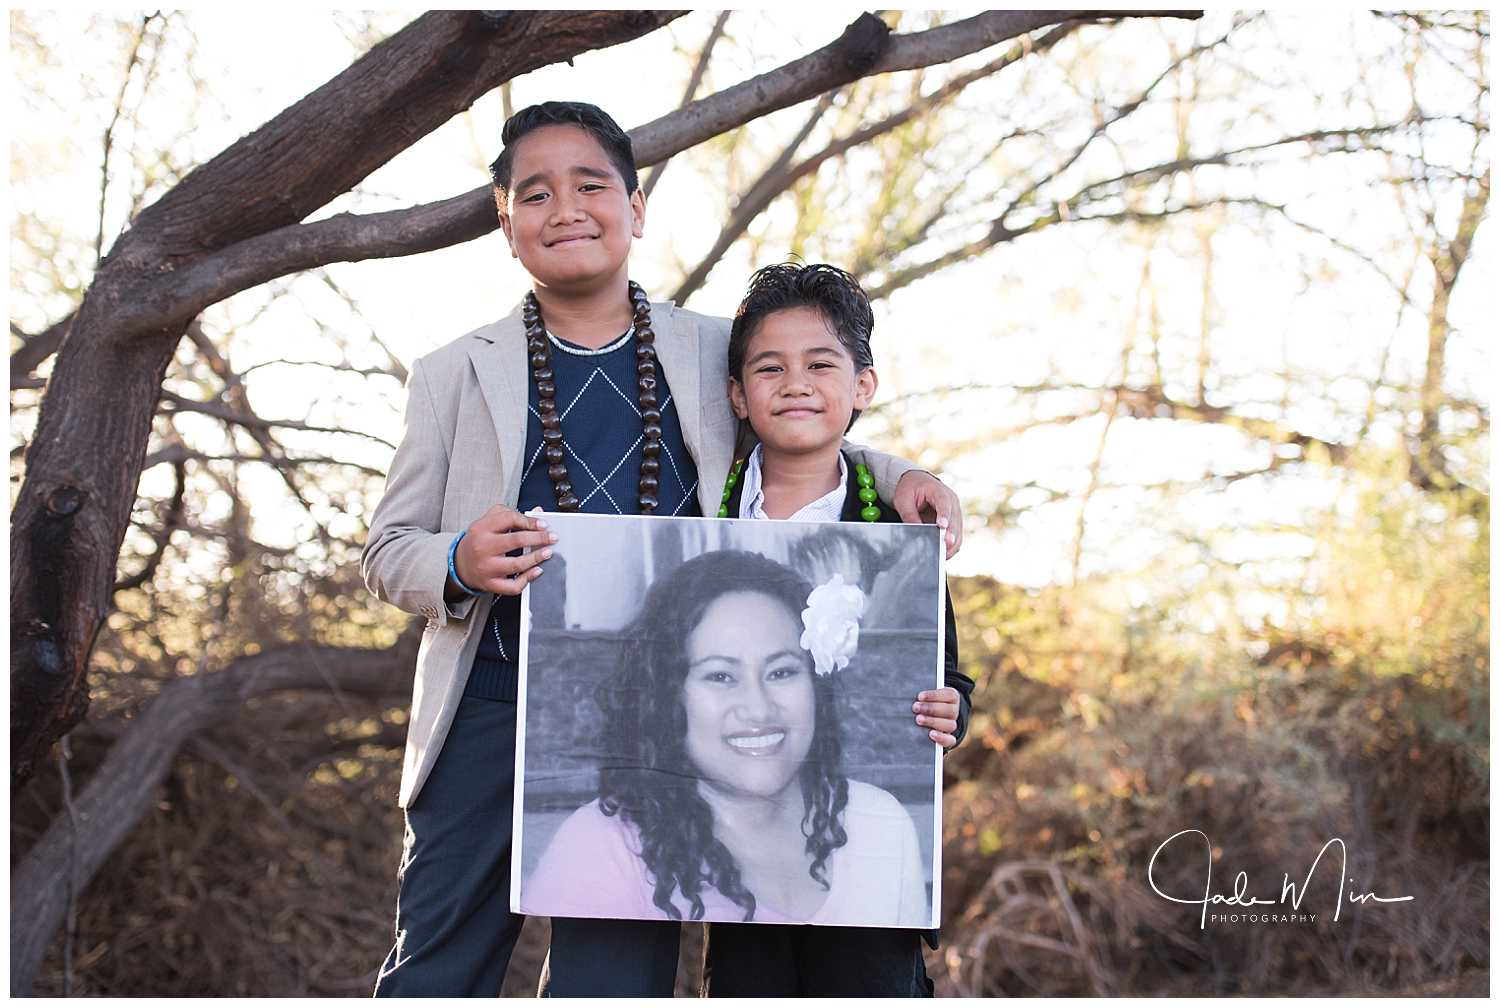 Mika and Niko holding a photo of their mom.